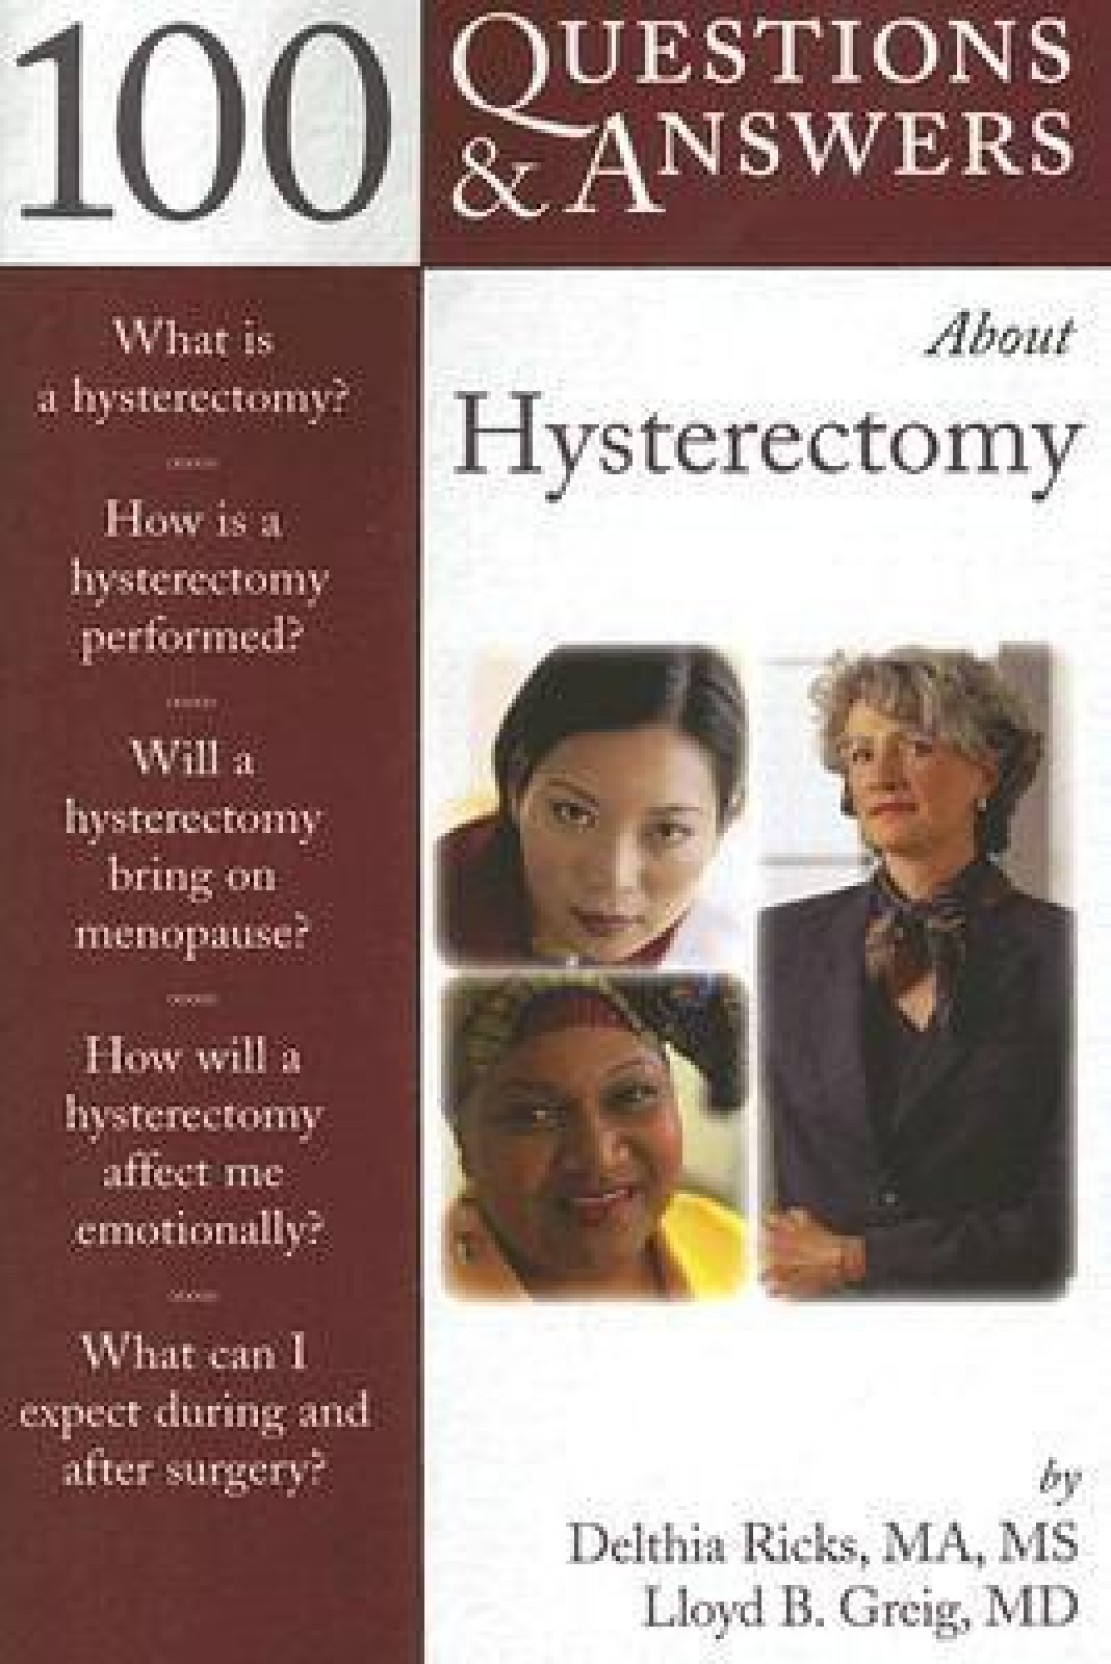 100 Questions & Answers about Hysterectomy. ADD TO CART